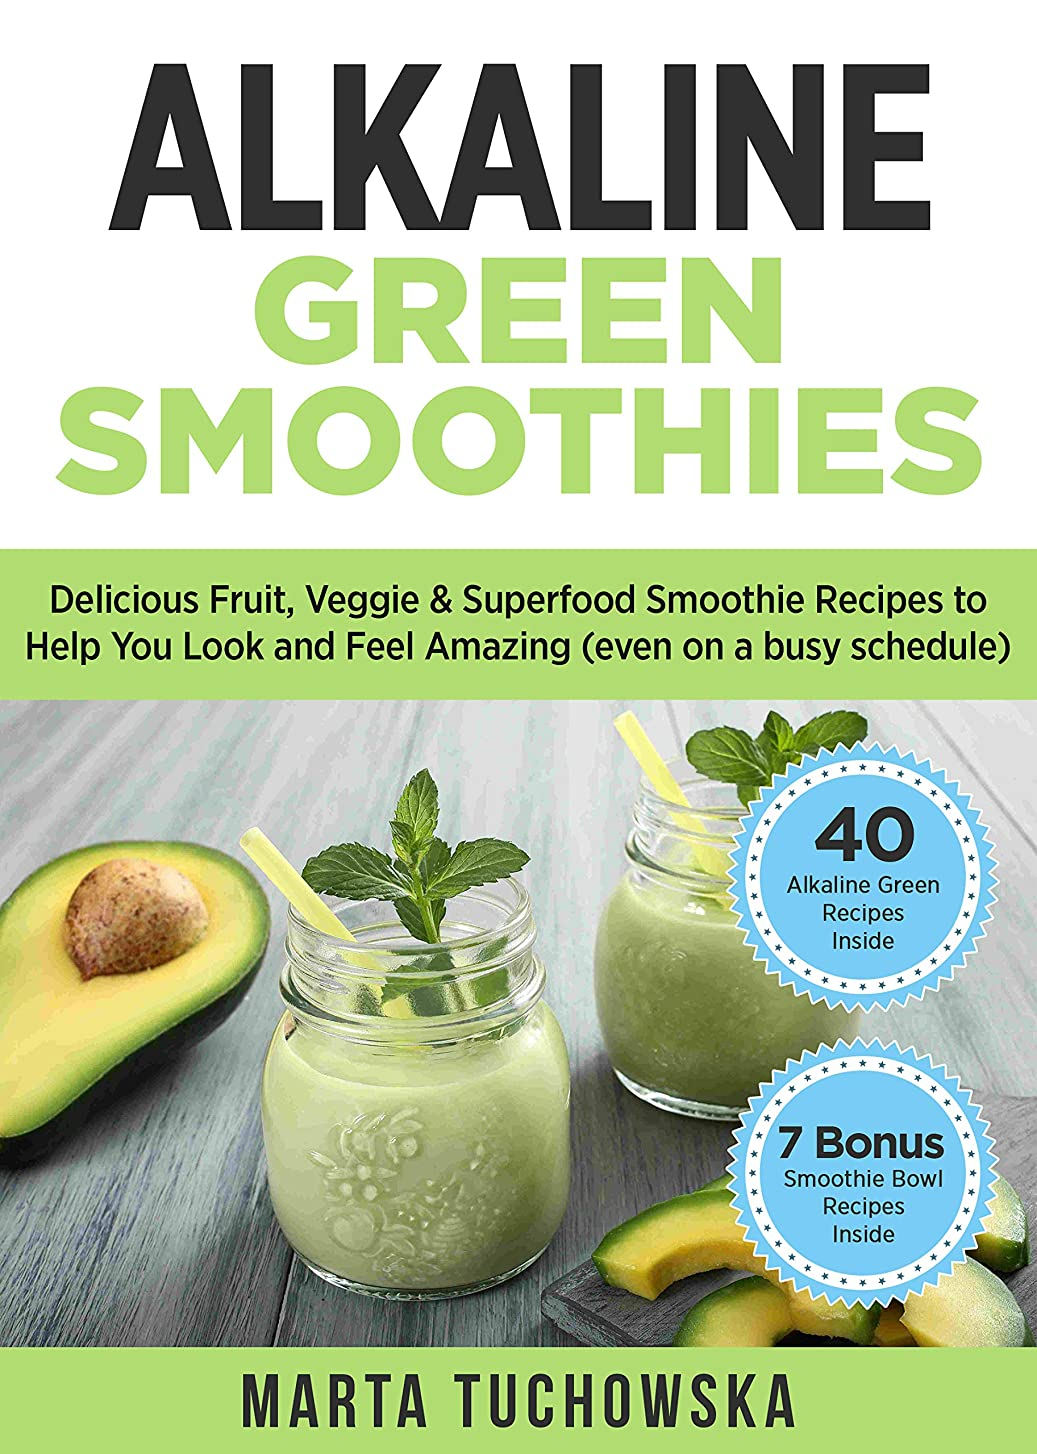 乙女案件アイスクリームAlkaline Green Smoothies: Delicious Fruit, Veggie & Superfood Smoothie Recipes to Help You Look and Feel Amazing (even on a busy schedule) (Alkaline Smoothie Recipes Book 3) (English Edition)